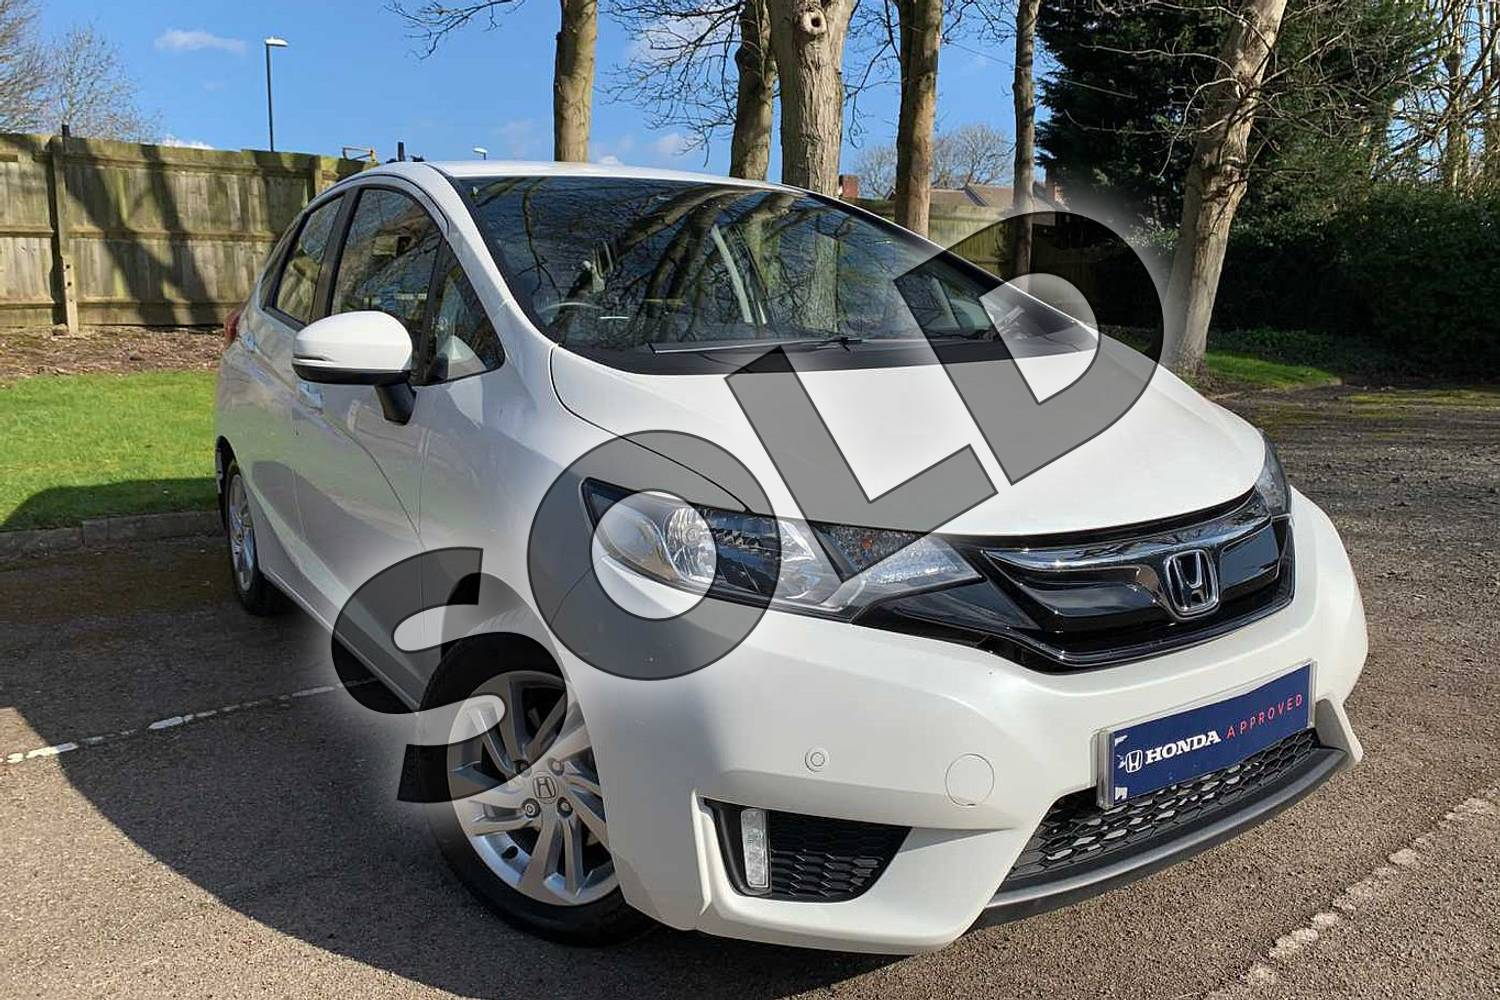 2017 Honda Jazz Hatchback 1.3 SE 5dr CVT in White Orchid at Listers Honda Coventry